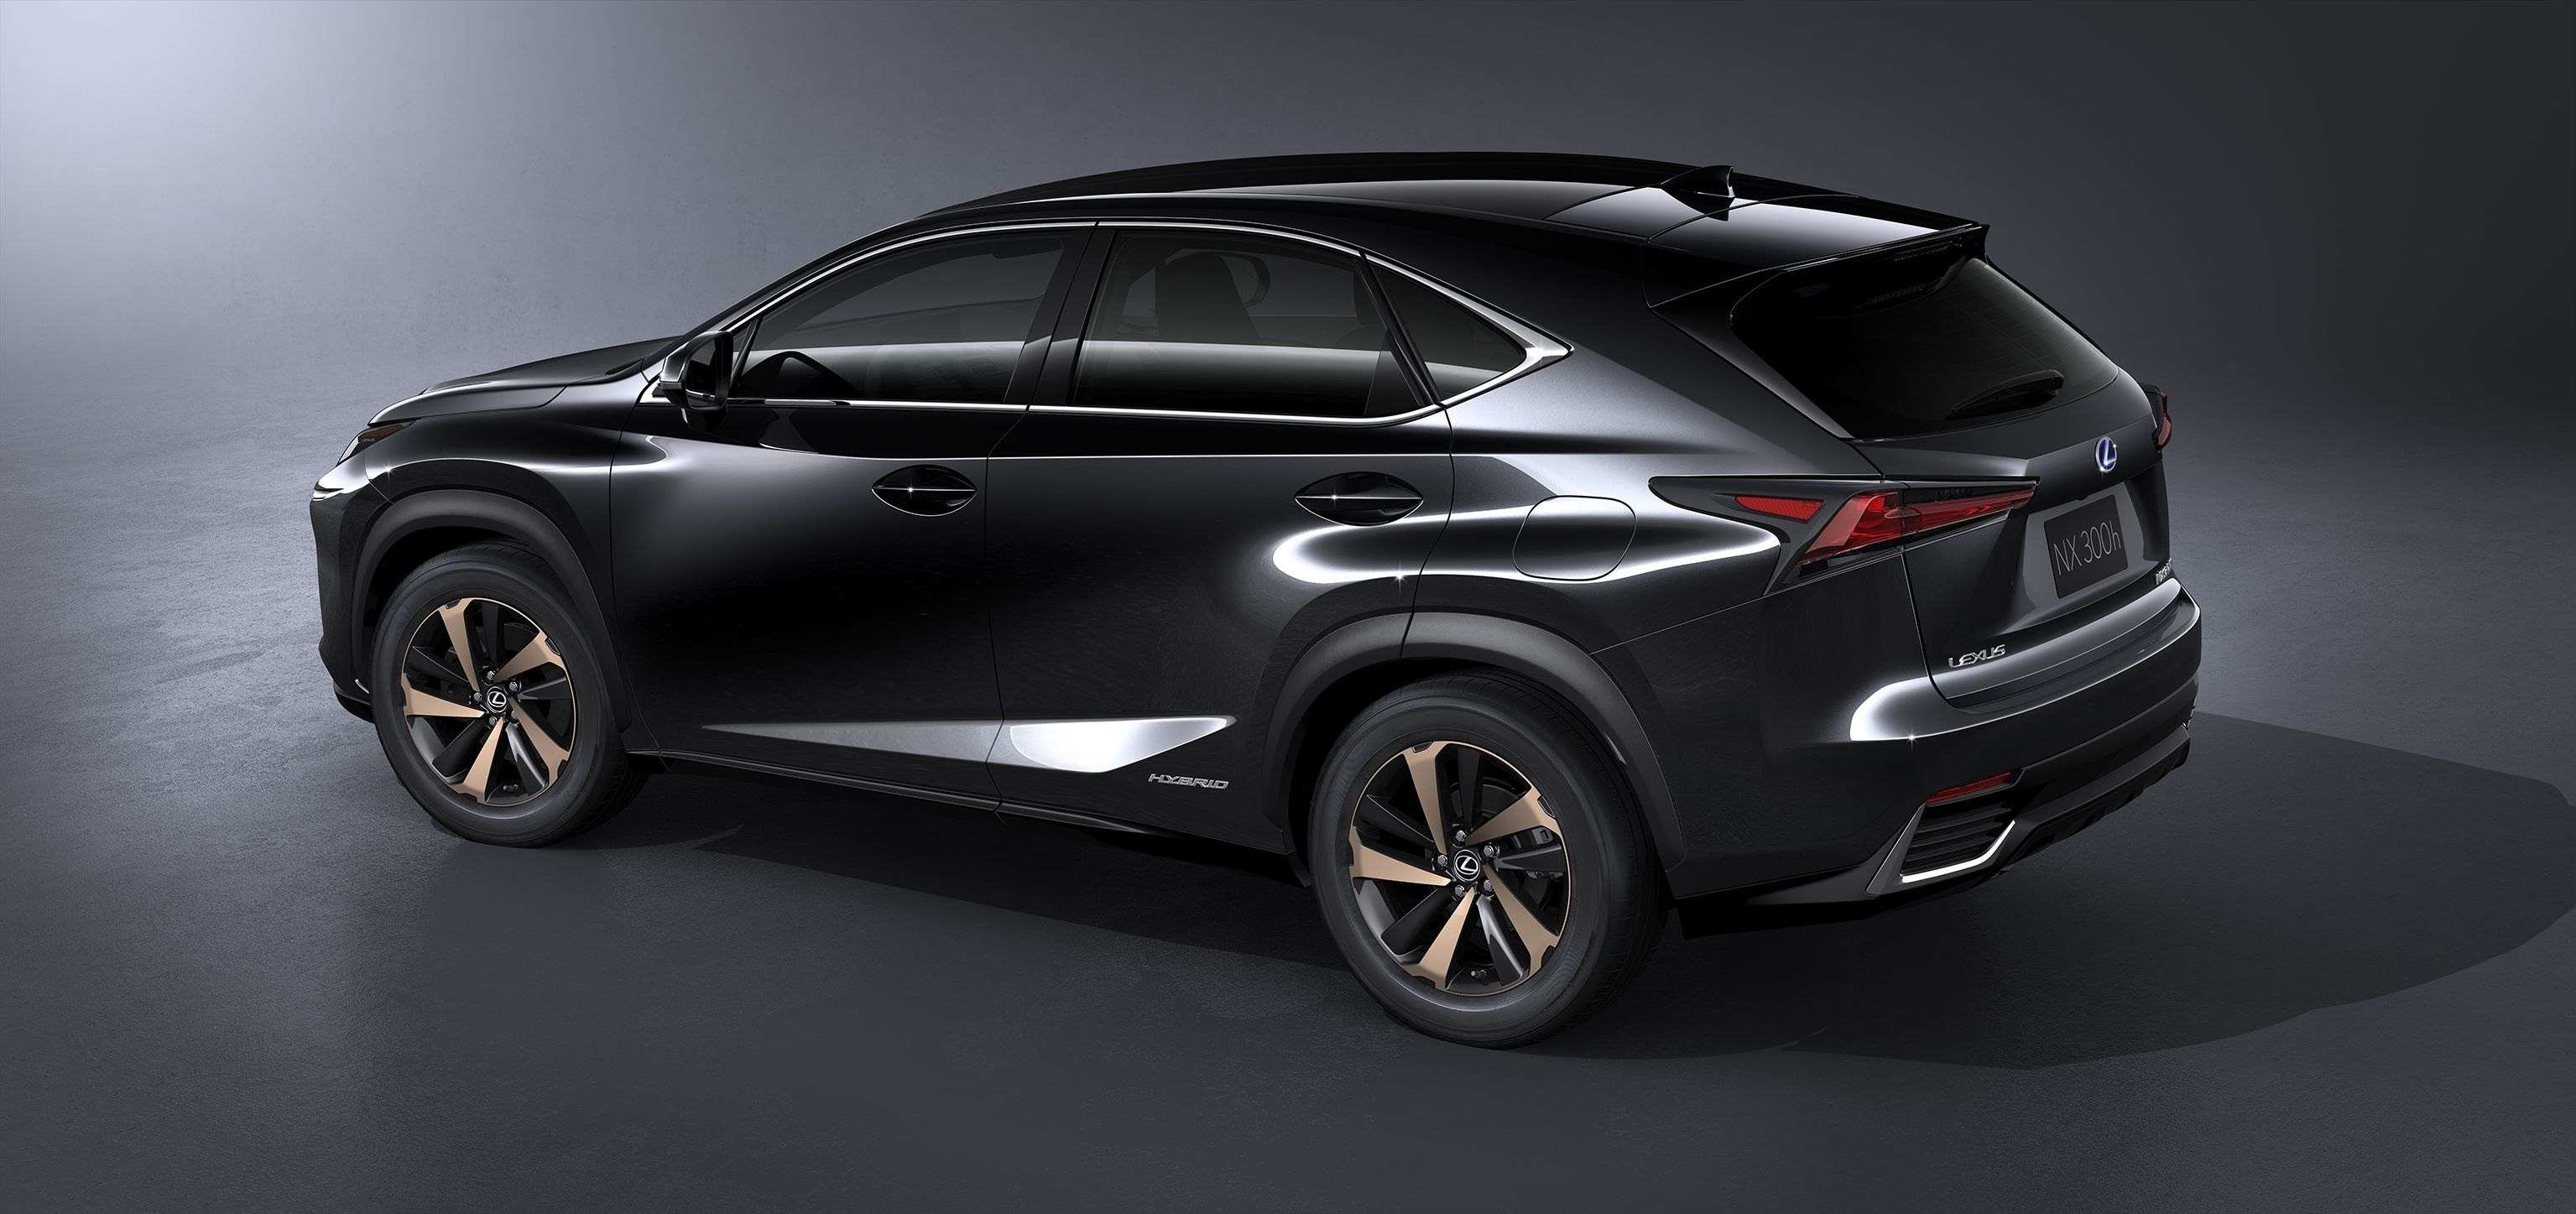 63 Best Pictures Of 2020 Lexus Rx 350 New Model And Performance